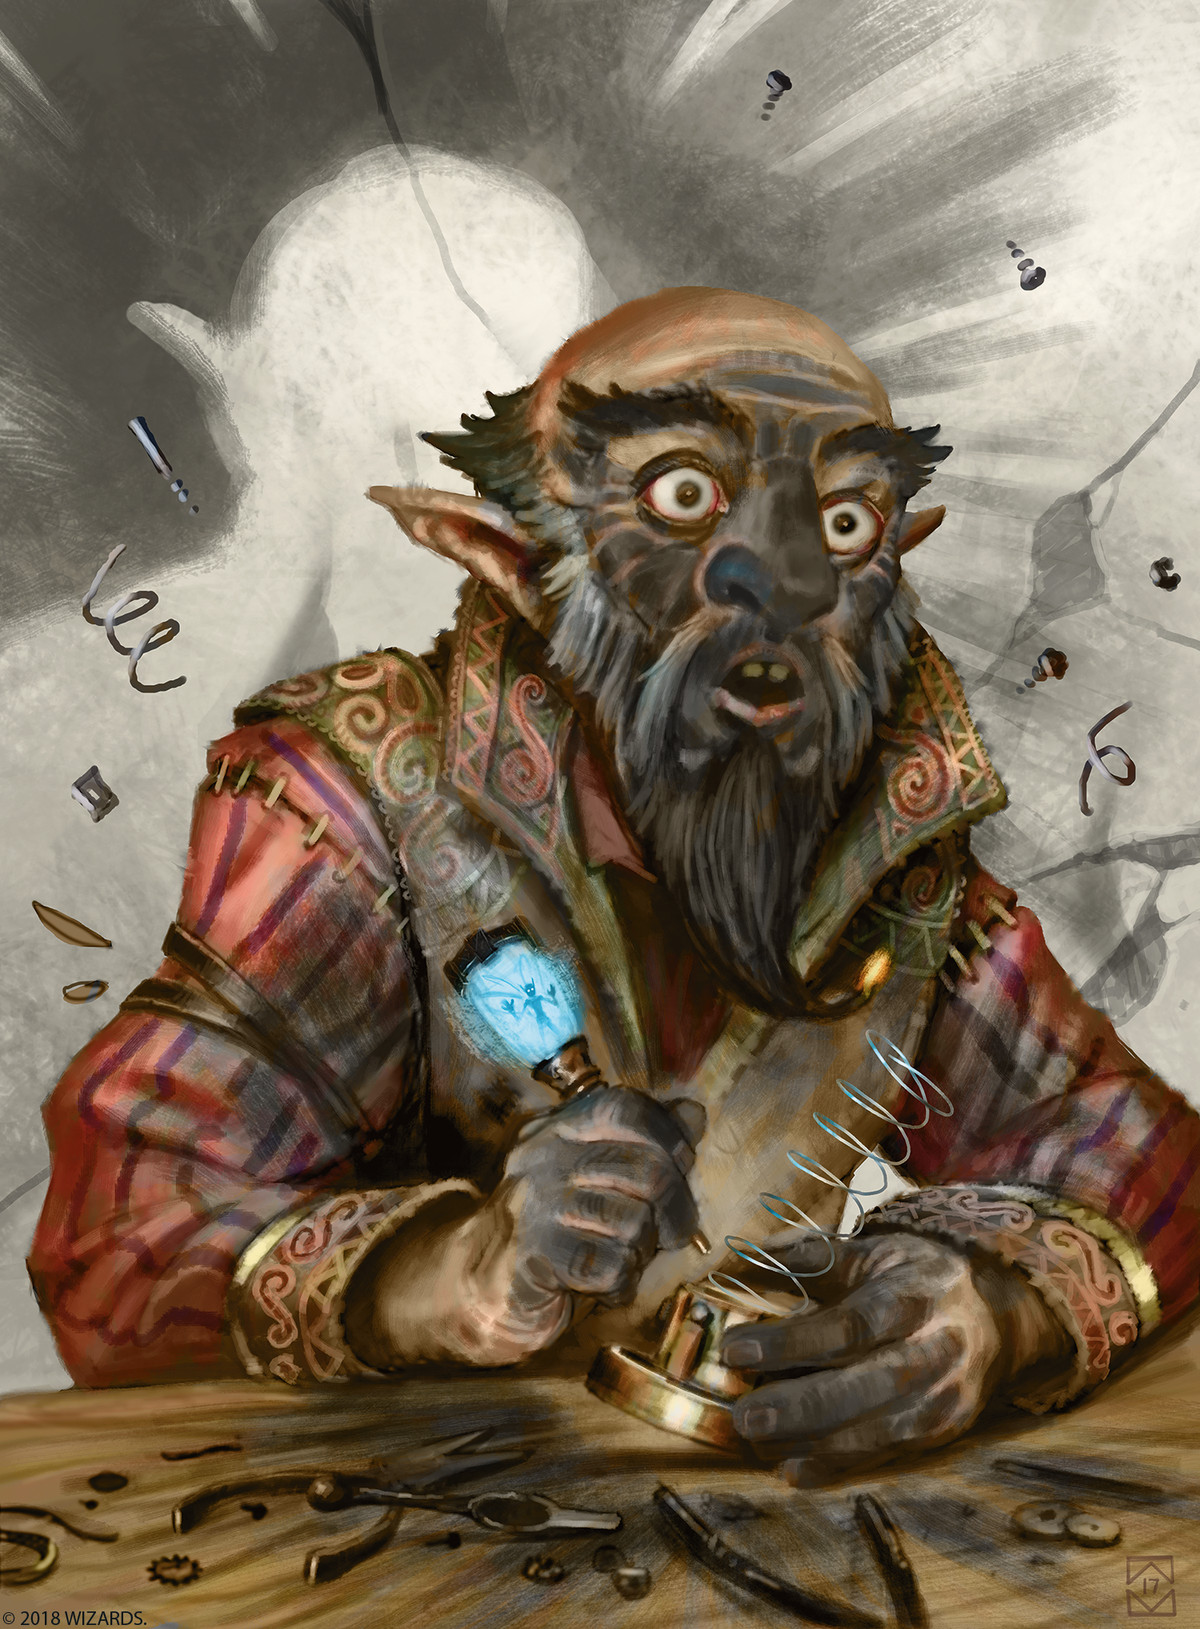 Exclusive new pages from D&D's next sourcebook, Mordenkainen's Tome